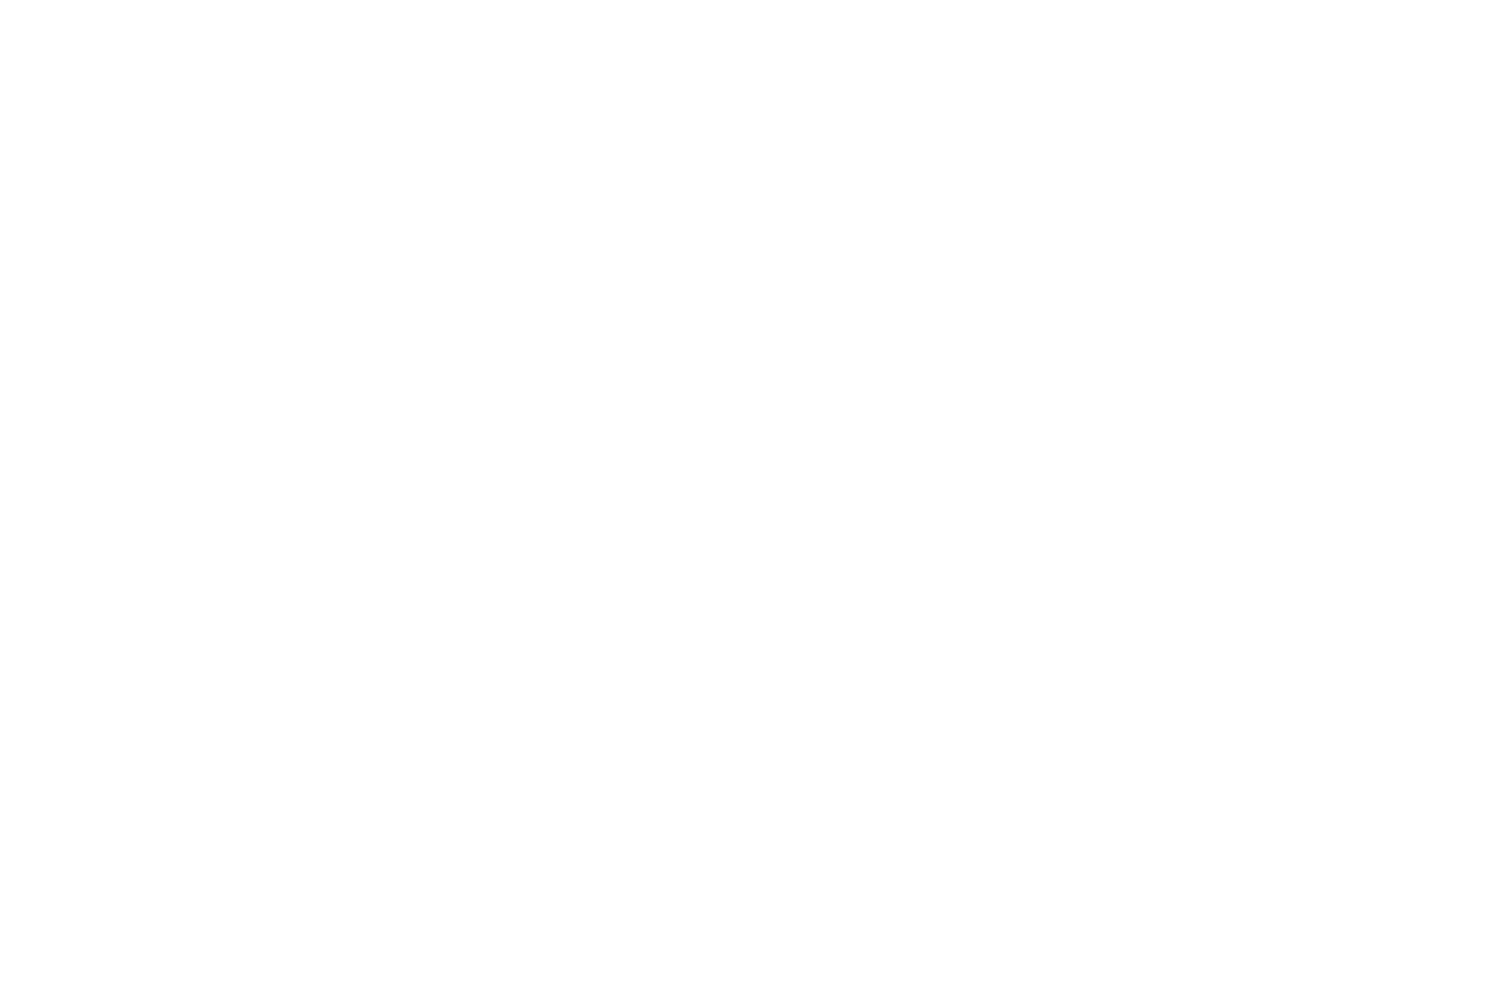 Buhay Photography